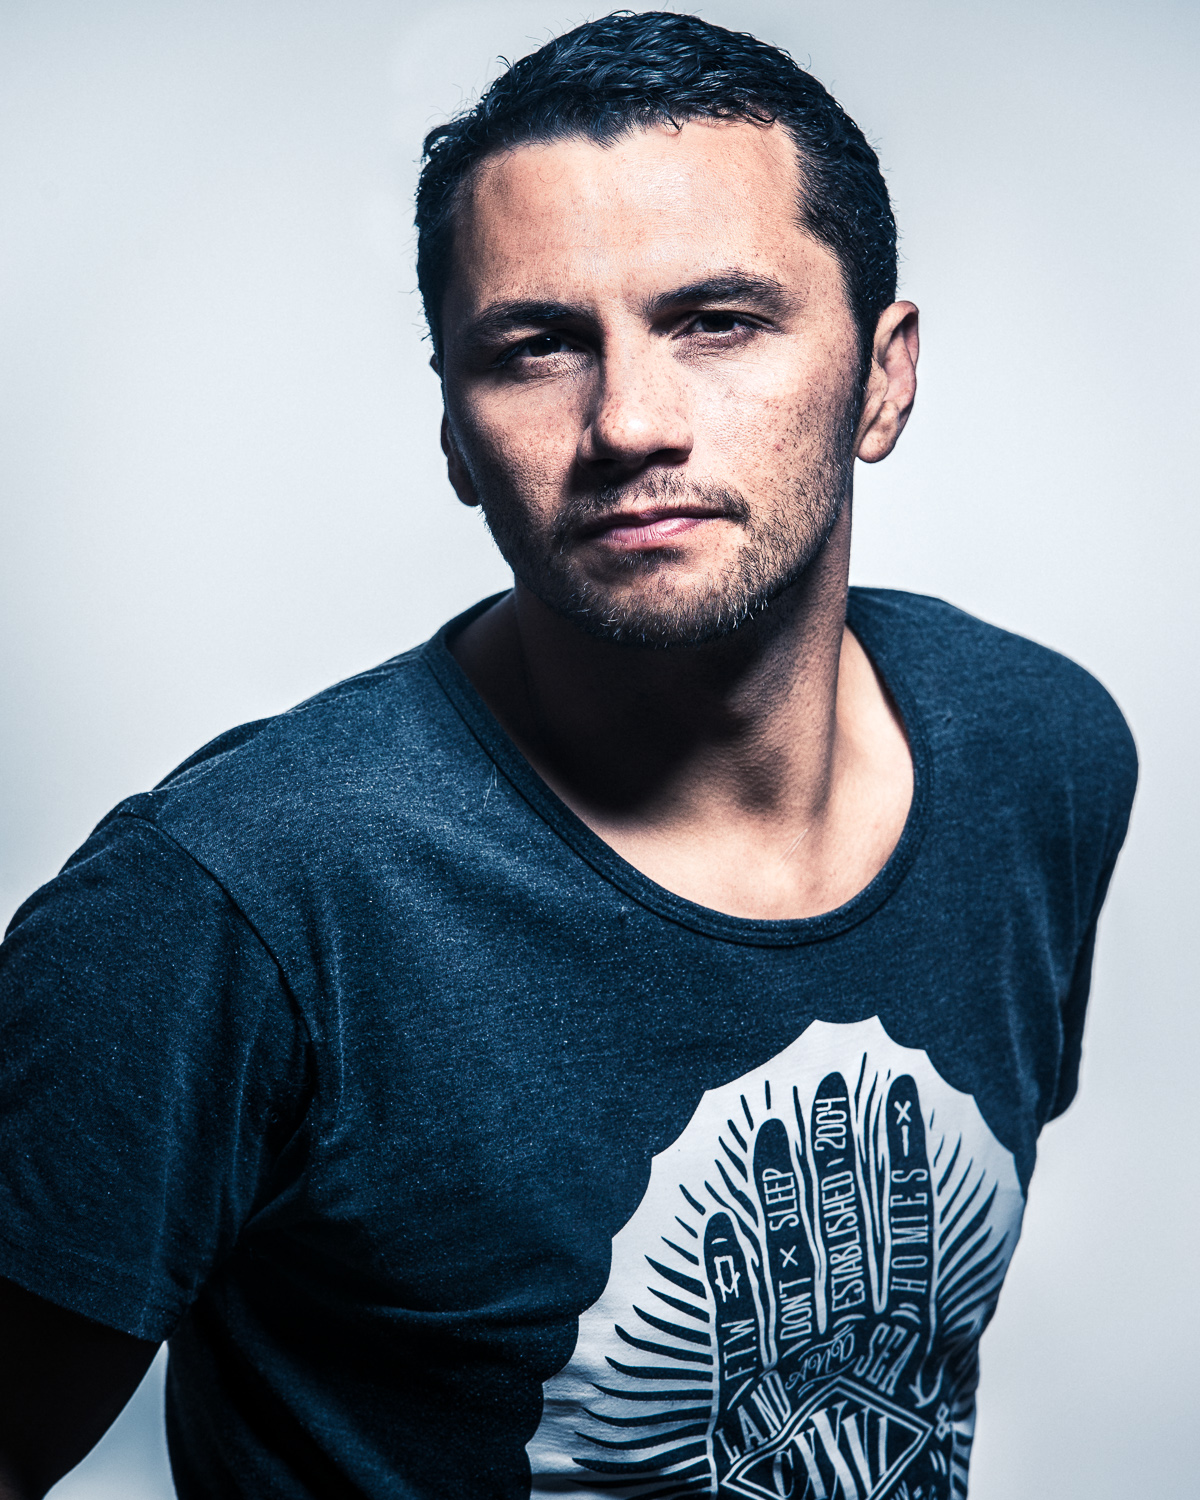 Jason Kerrison_002_photo_©2013 Steve Dykes.jpg